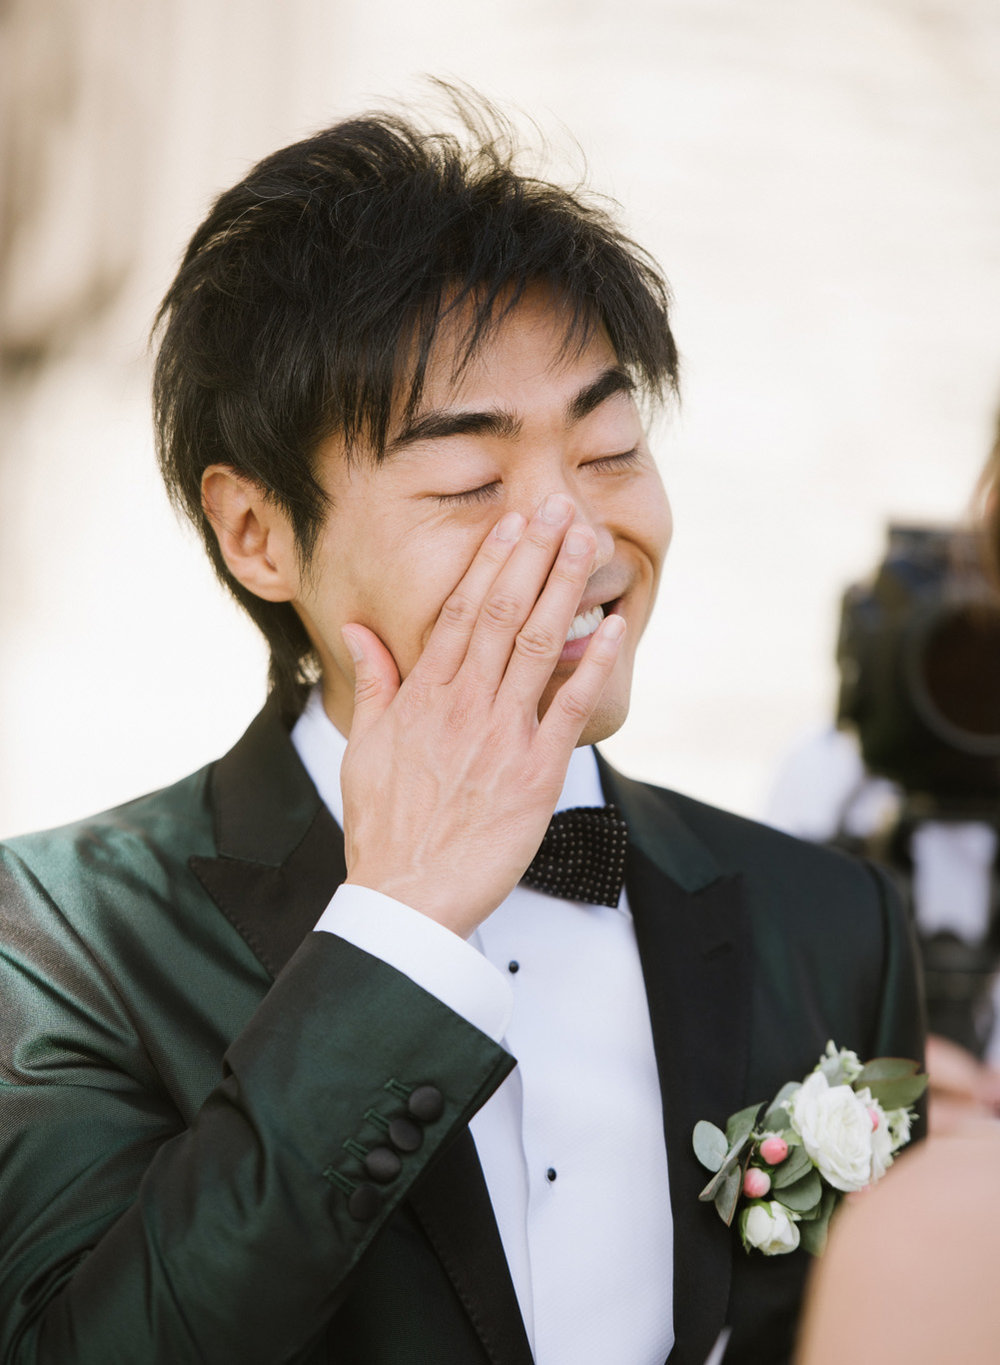 Groom tears up during a wedding ceremony in Gordes chateau in France; Sylvie Gil Photography